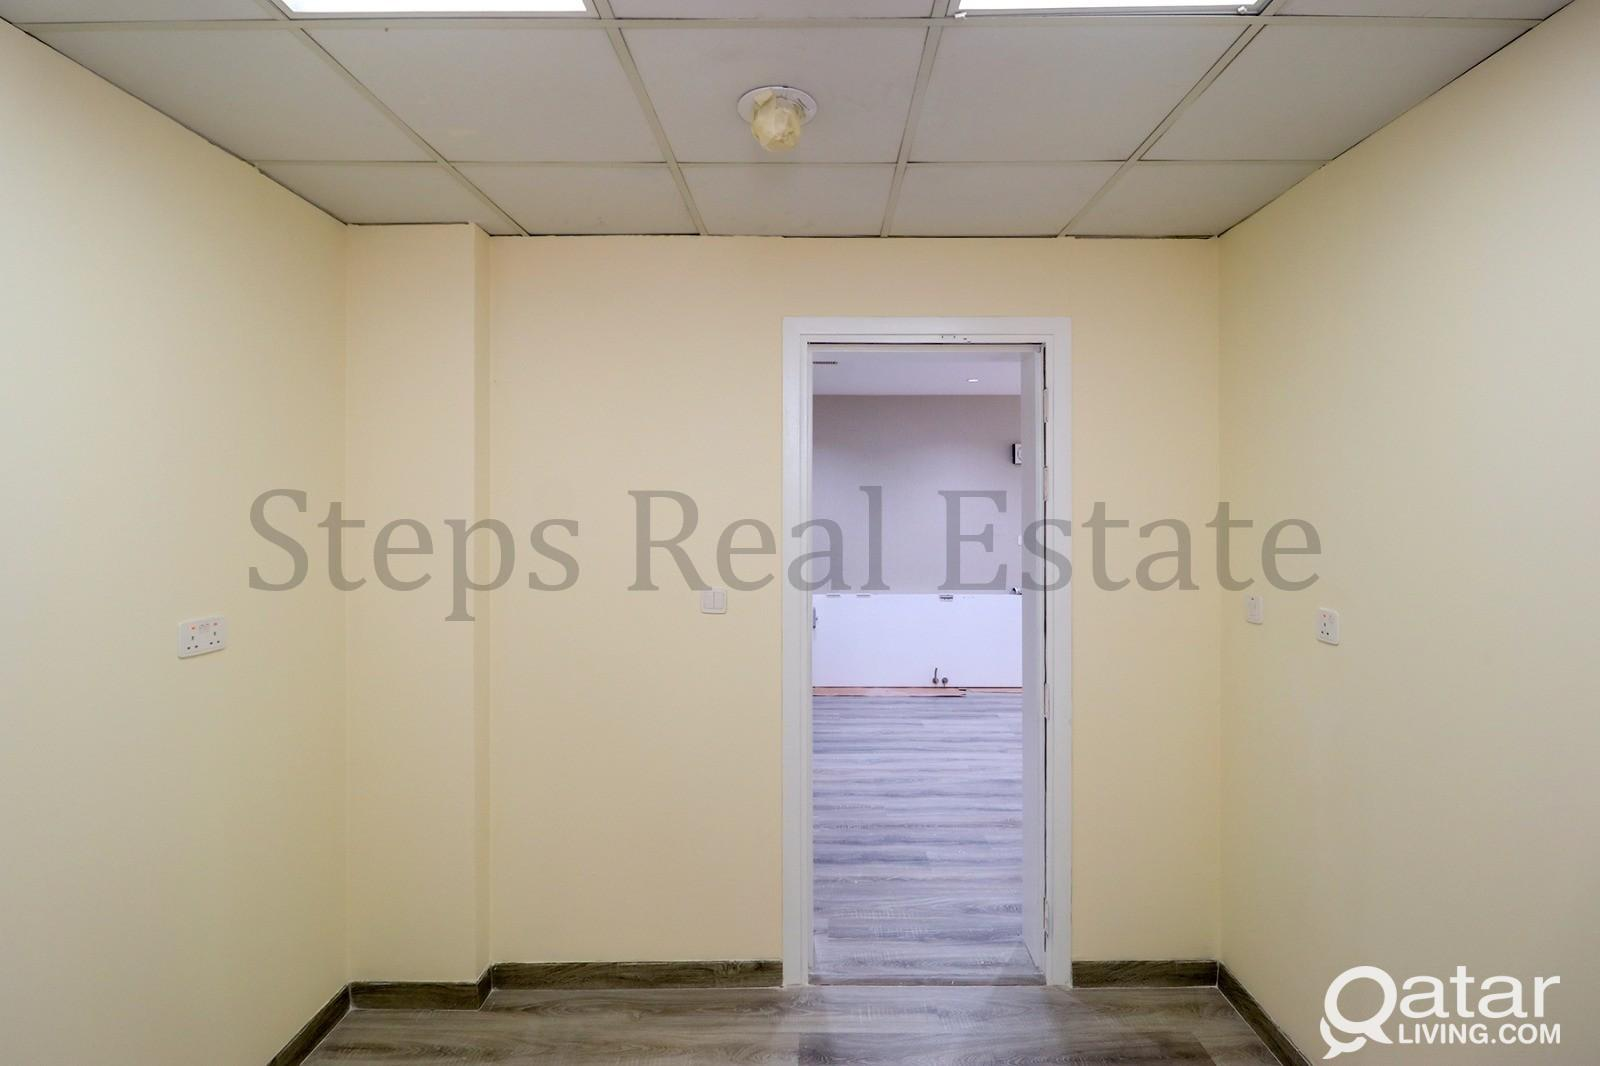 125 Sqm offices available in Al Nasr Main Street